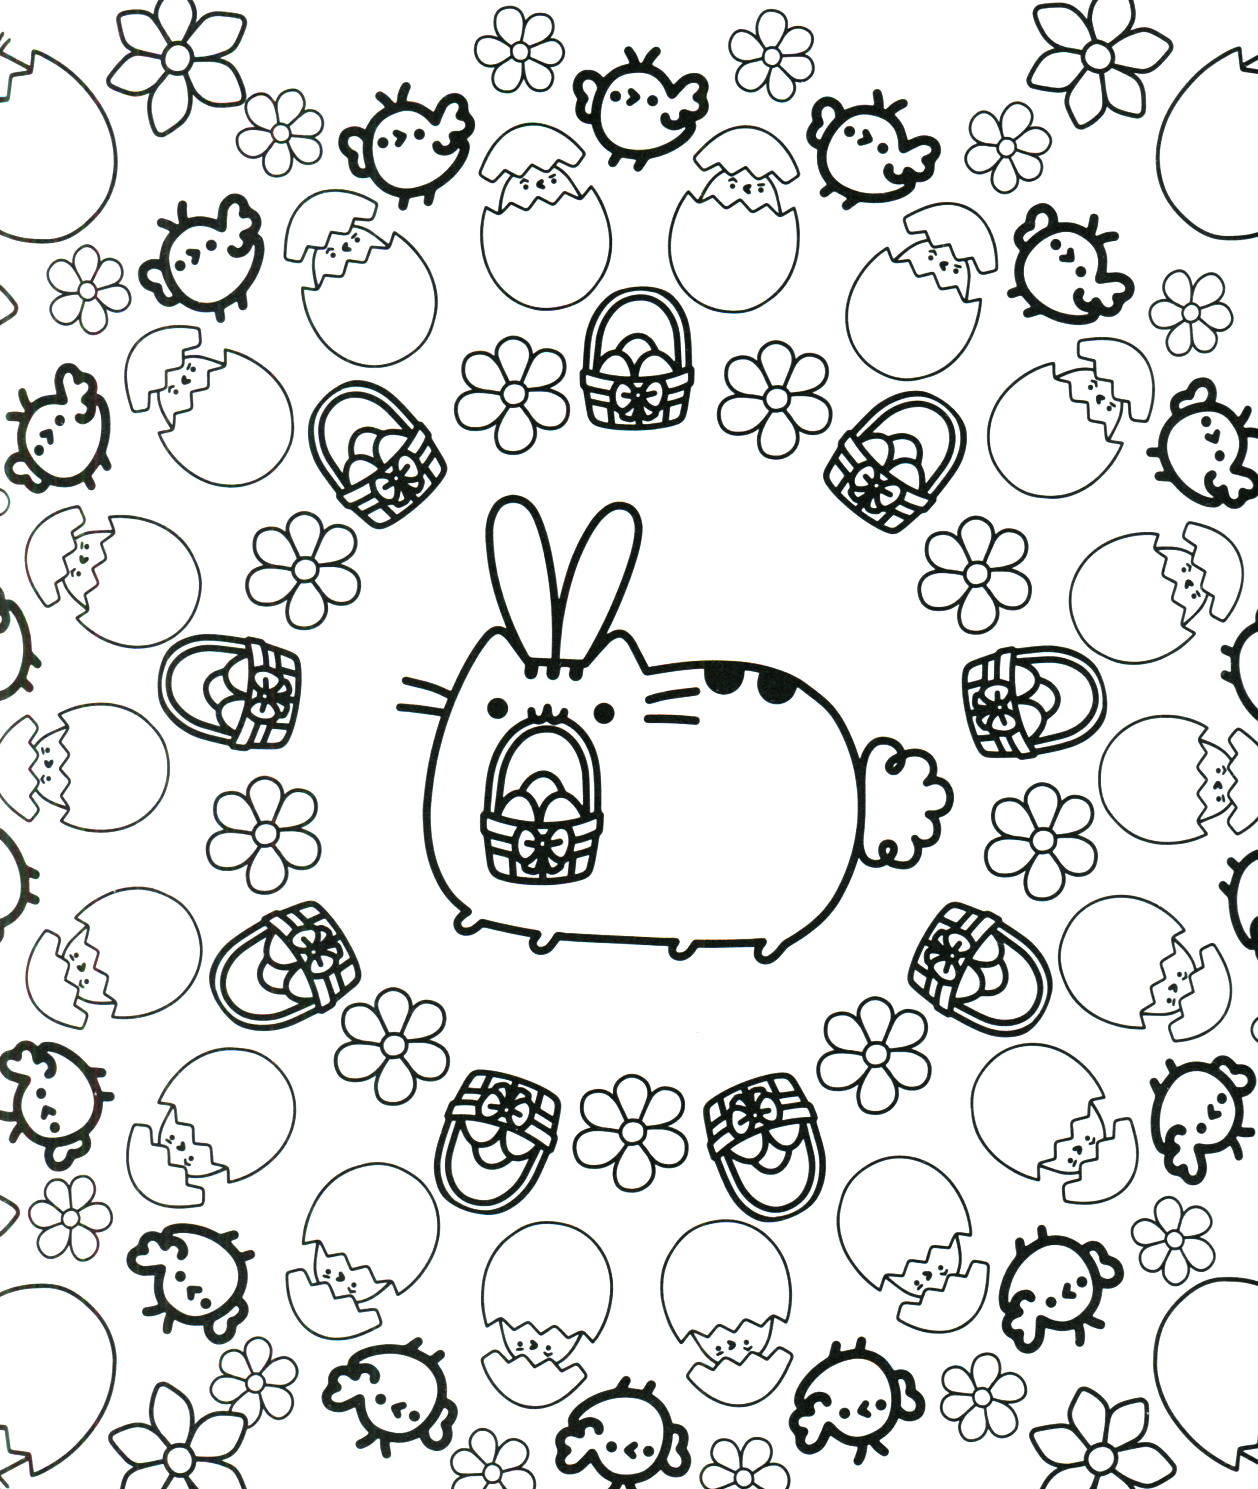 Coloring pages of spring things - Pusheen Coloring Book Pusheen Pusheen The Cat